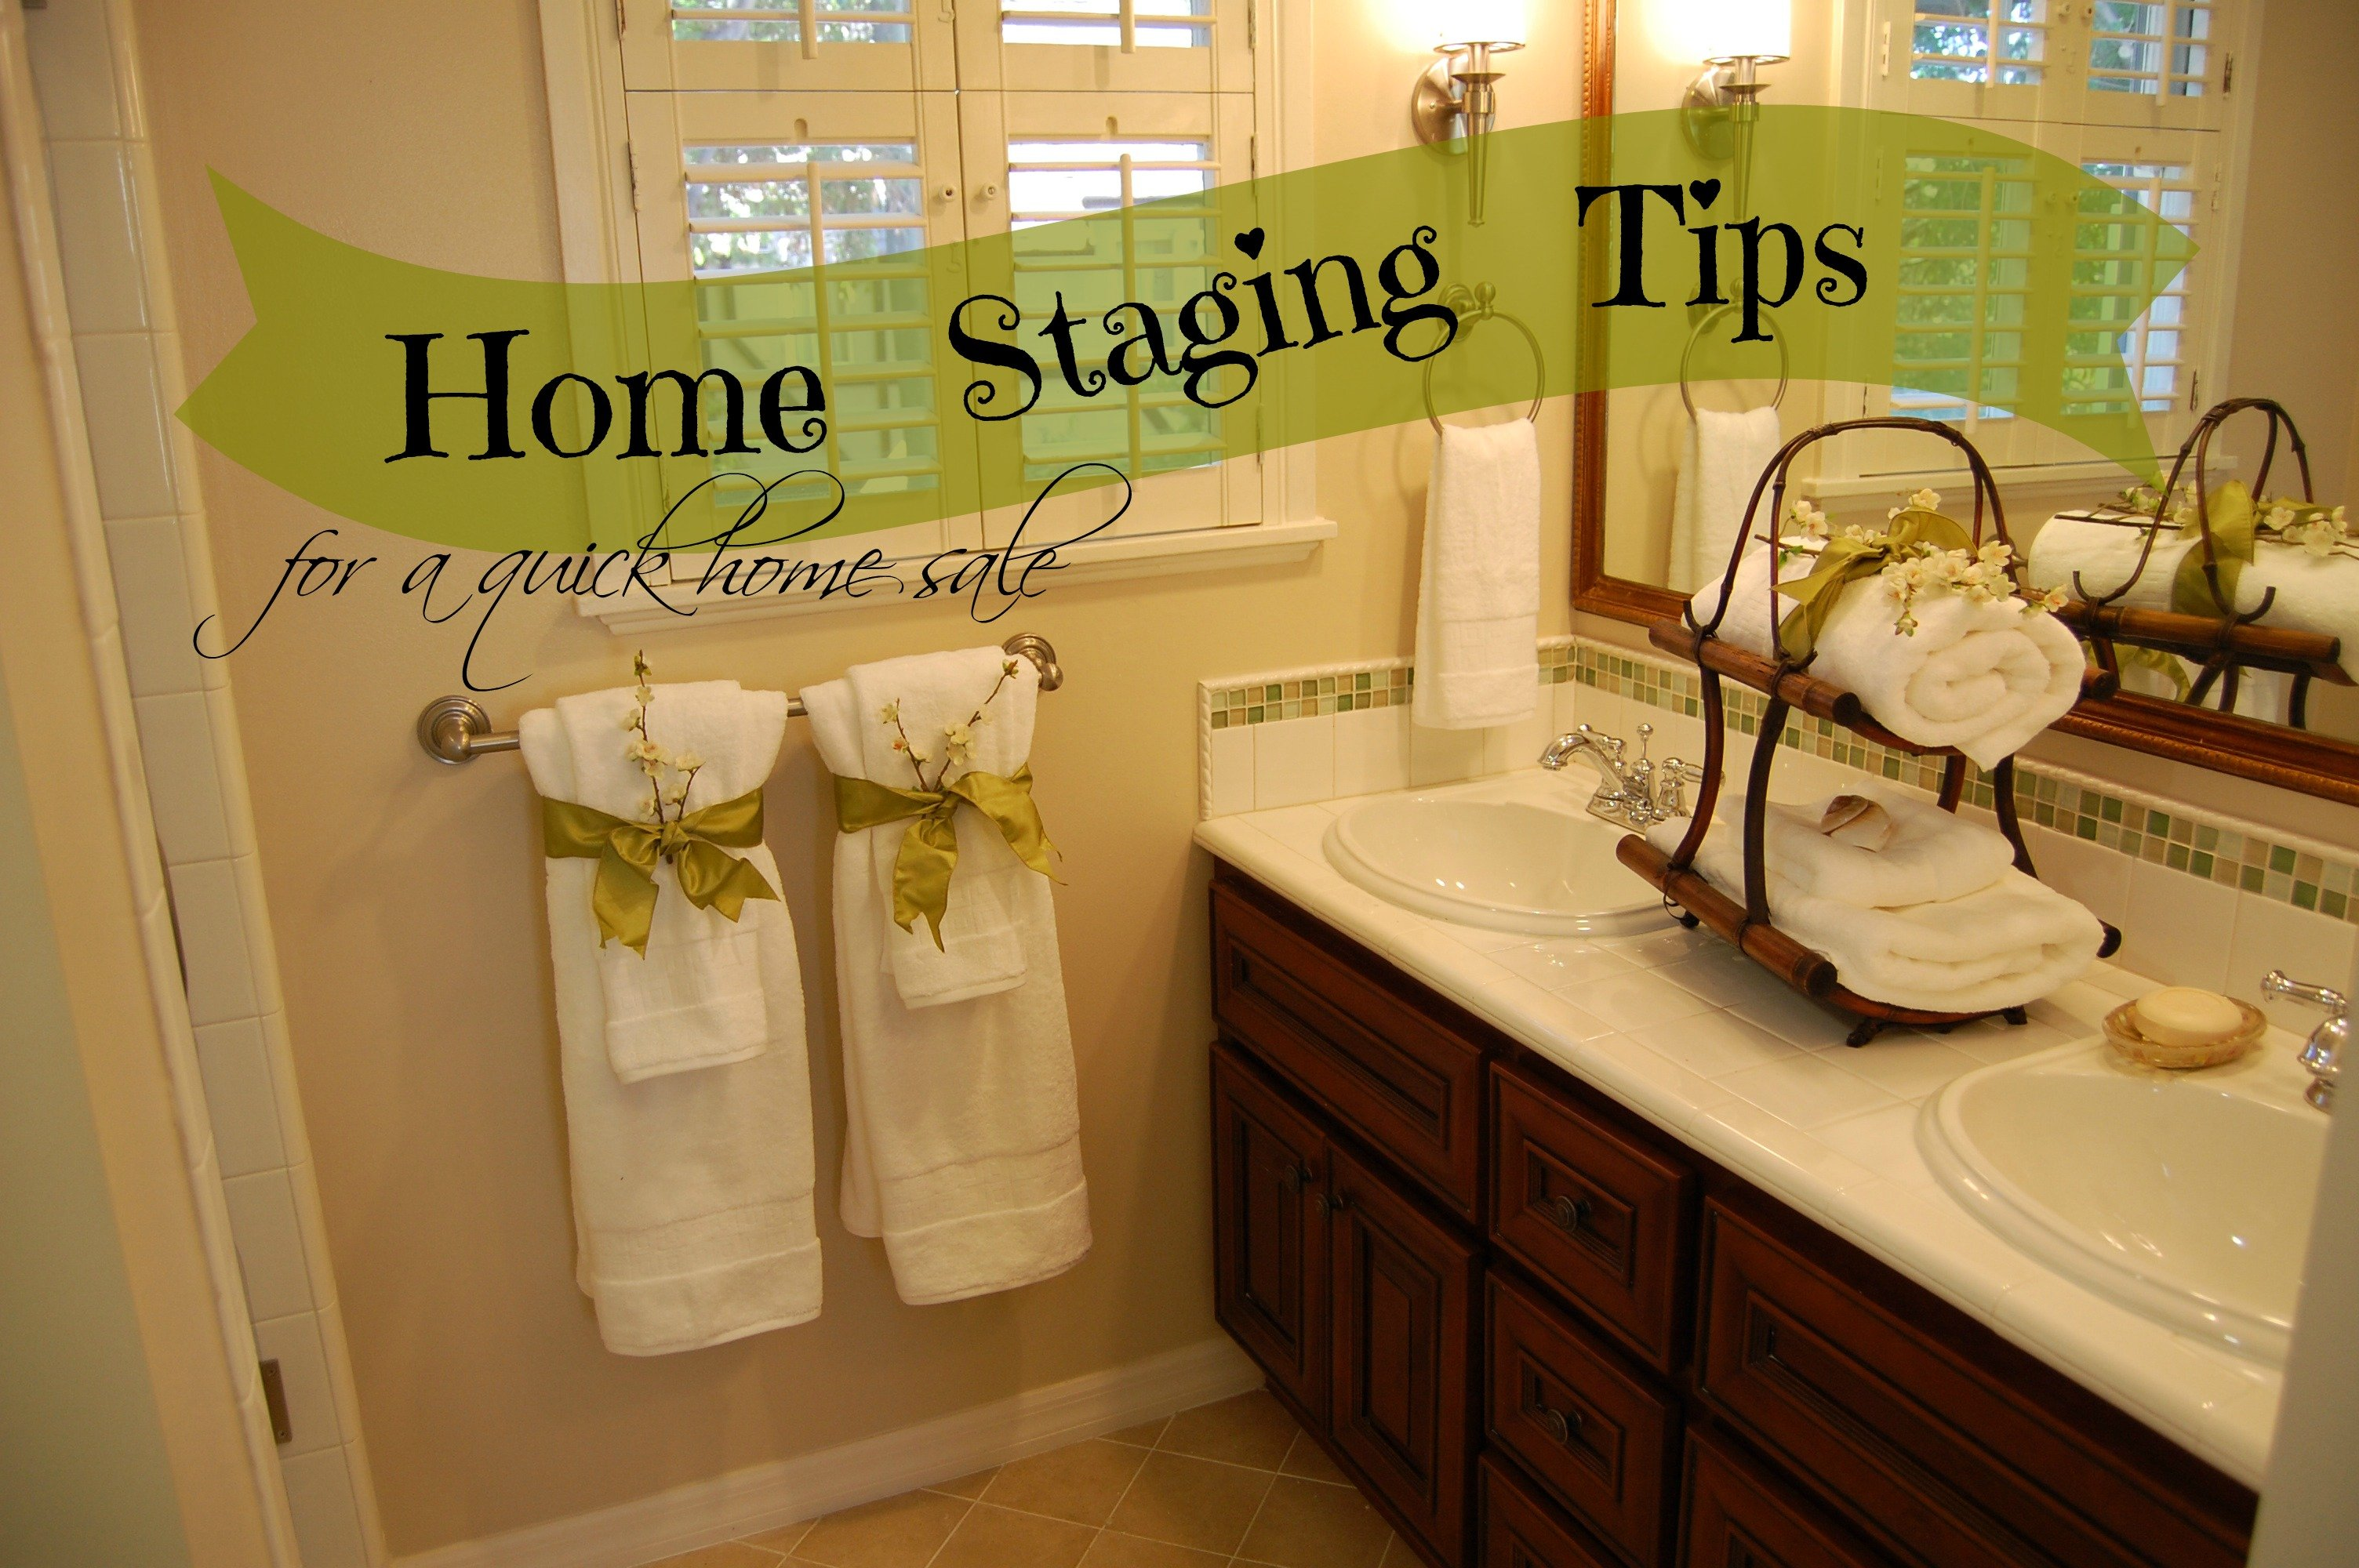 Home Decor For Sale: Home Staging Tips For A Quick Home Sale